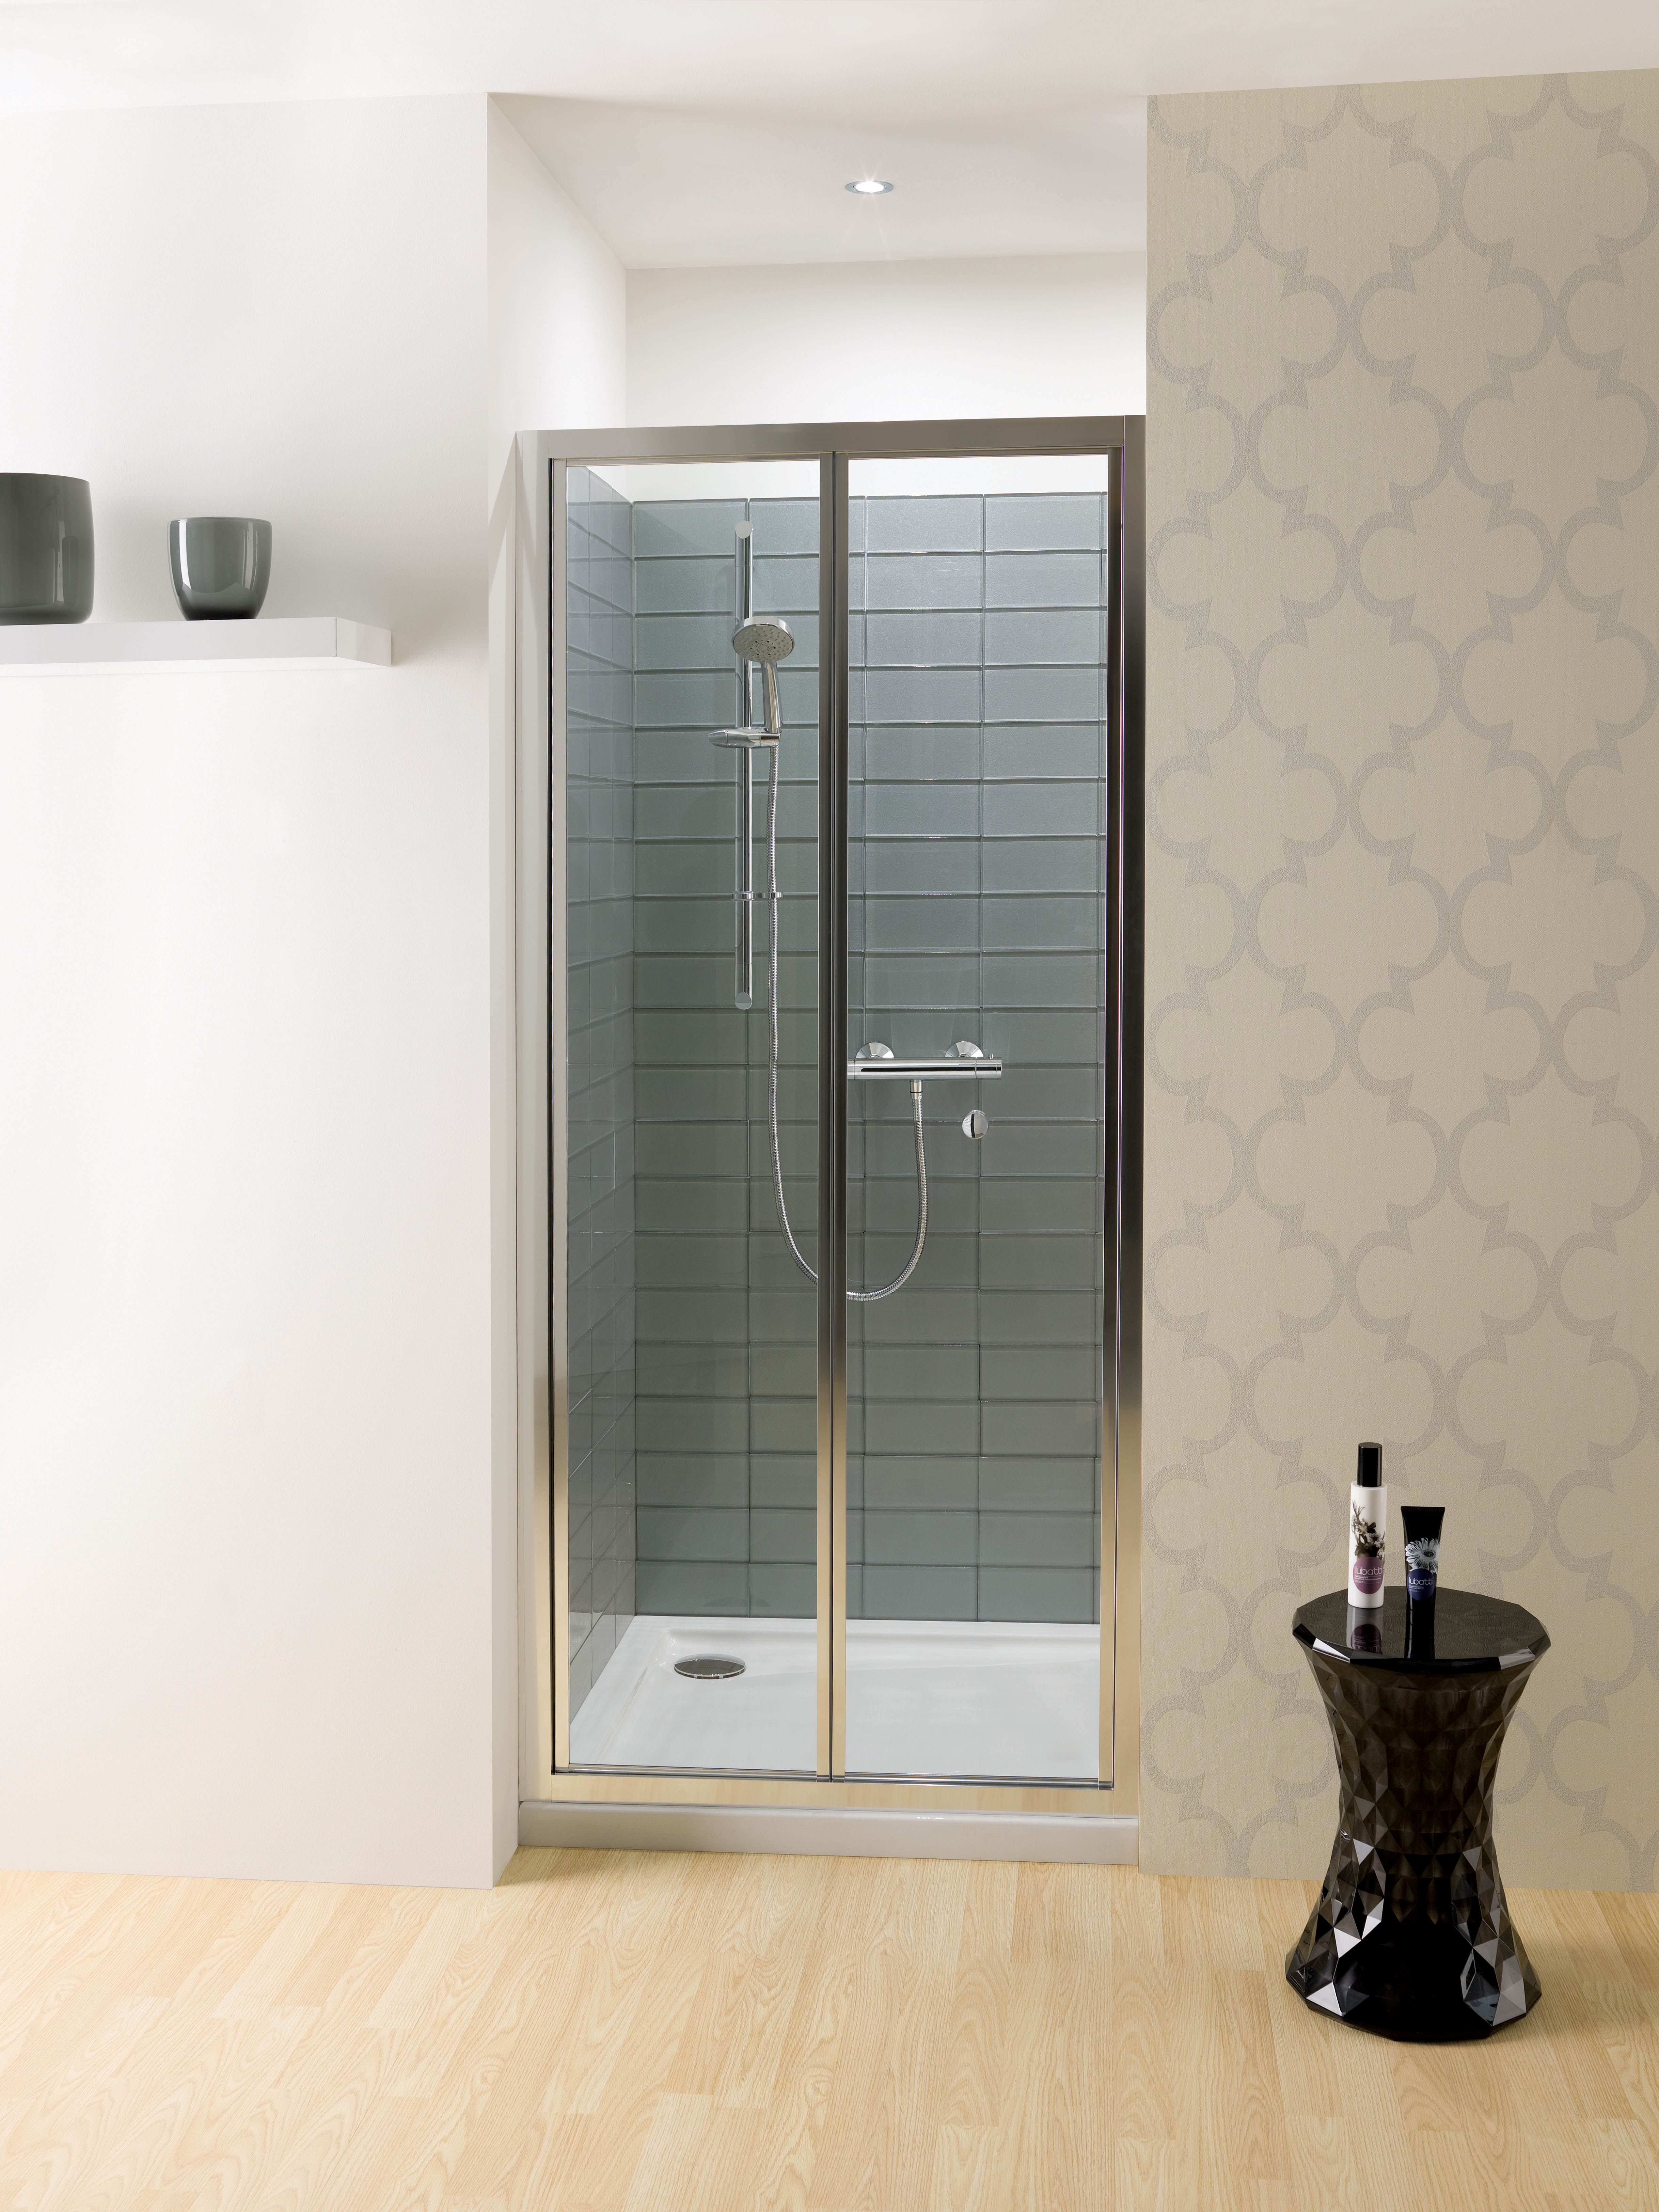 Pin By Crosswater Uk On Small Wonder Pinterest Shower Enclosure